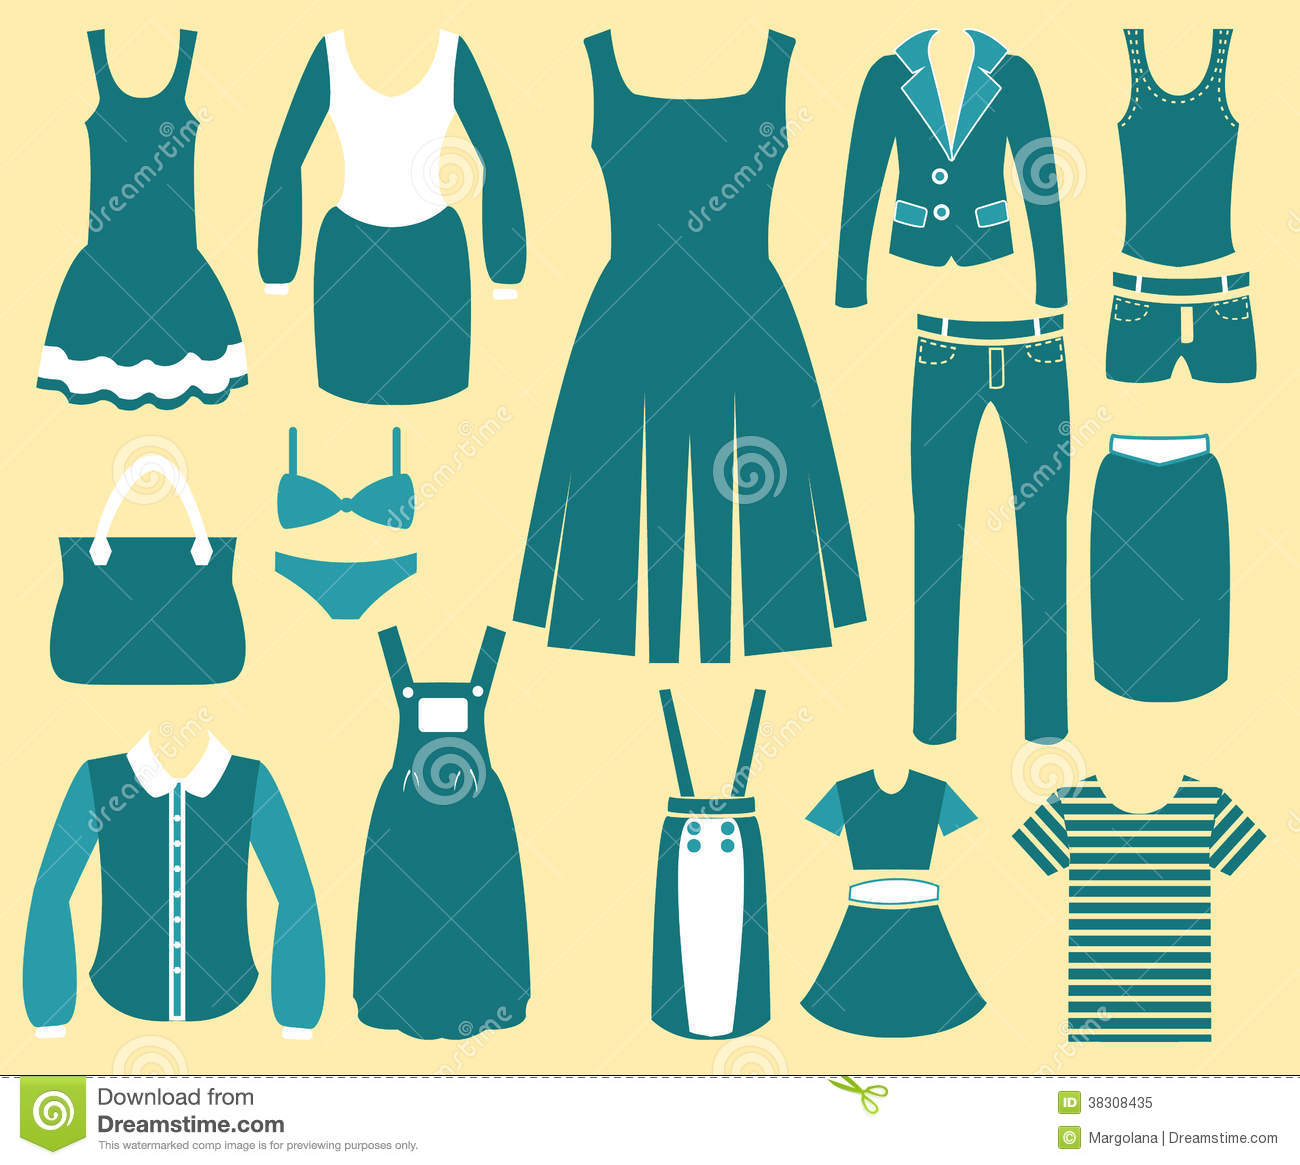 Womens Fashion Clothes Vintage Icons Royalty Free Stock Photo Image 38308435